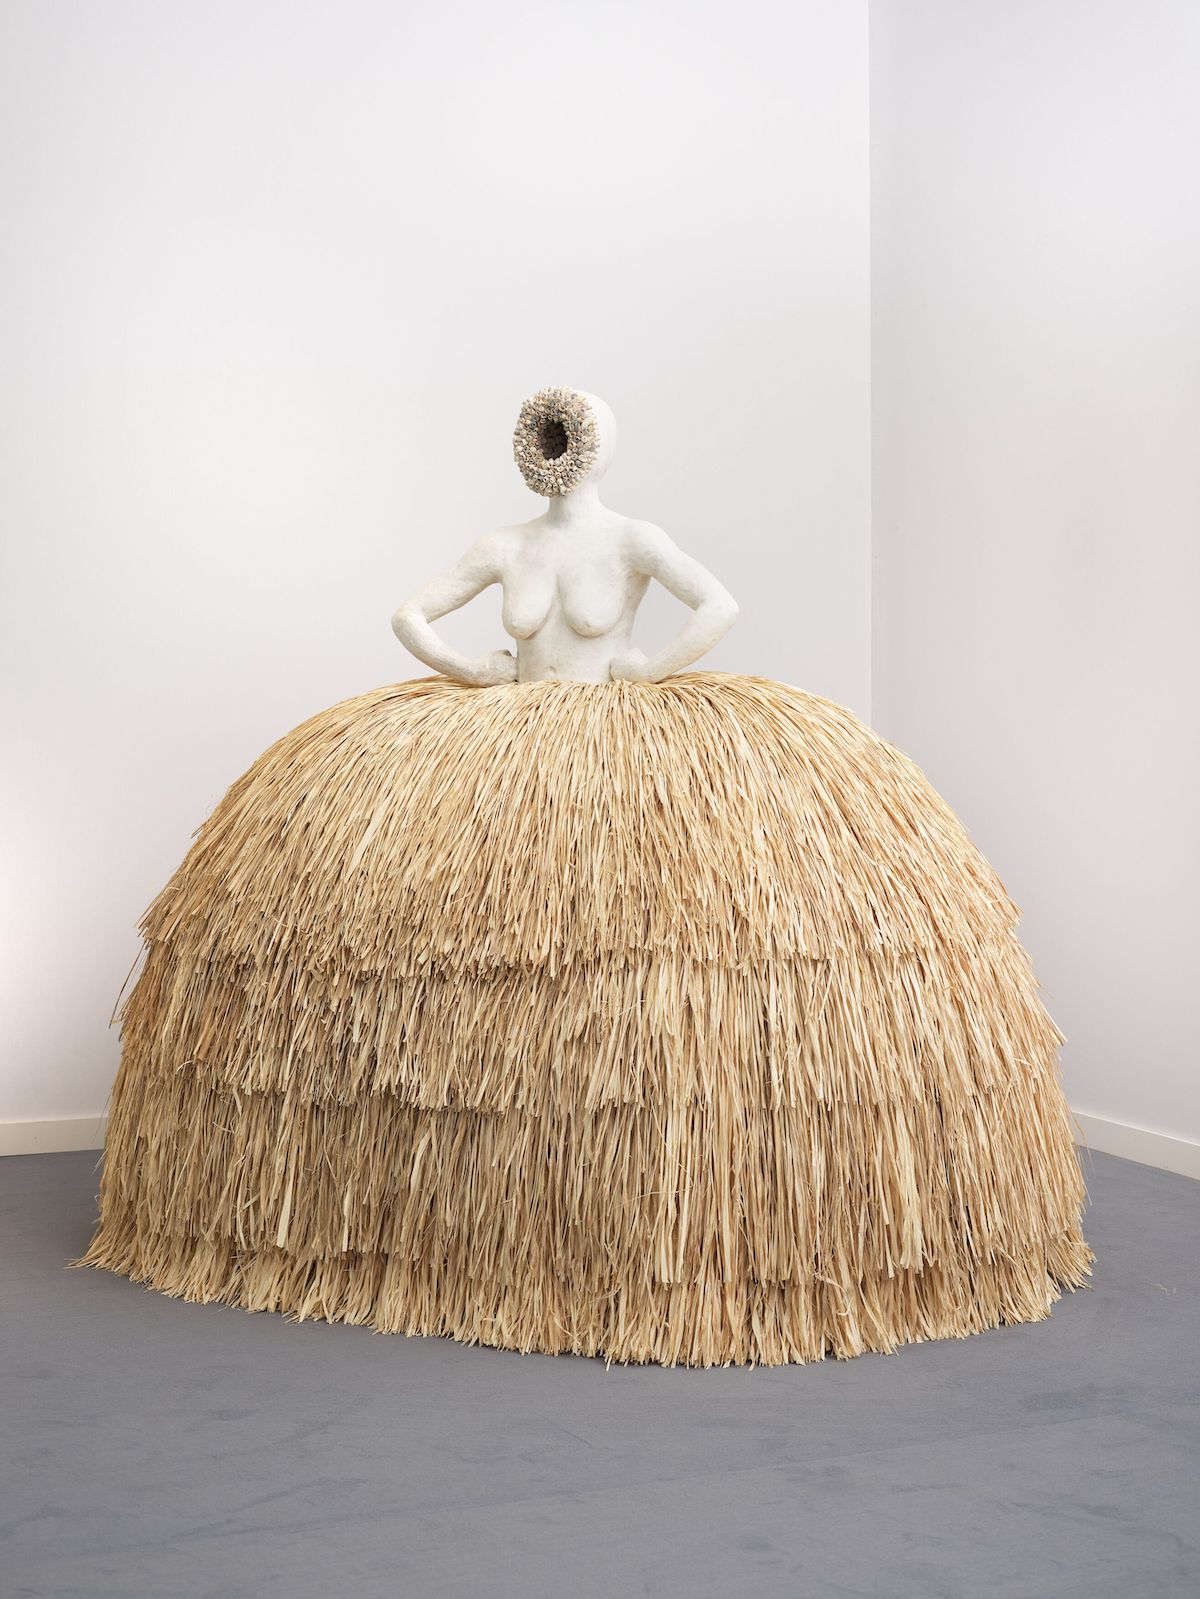 Simone Leigh, 'Las Meninas', 2019. A female form with a missing face holds her hips above a raffia dress.